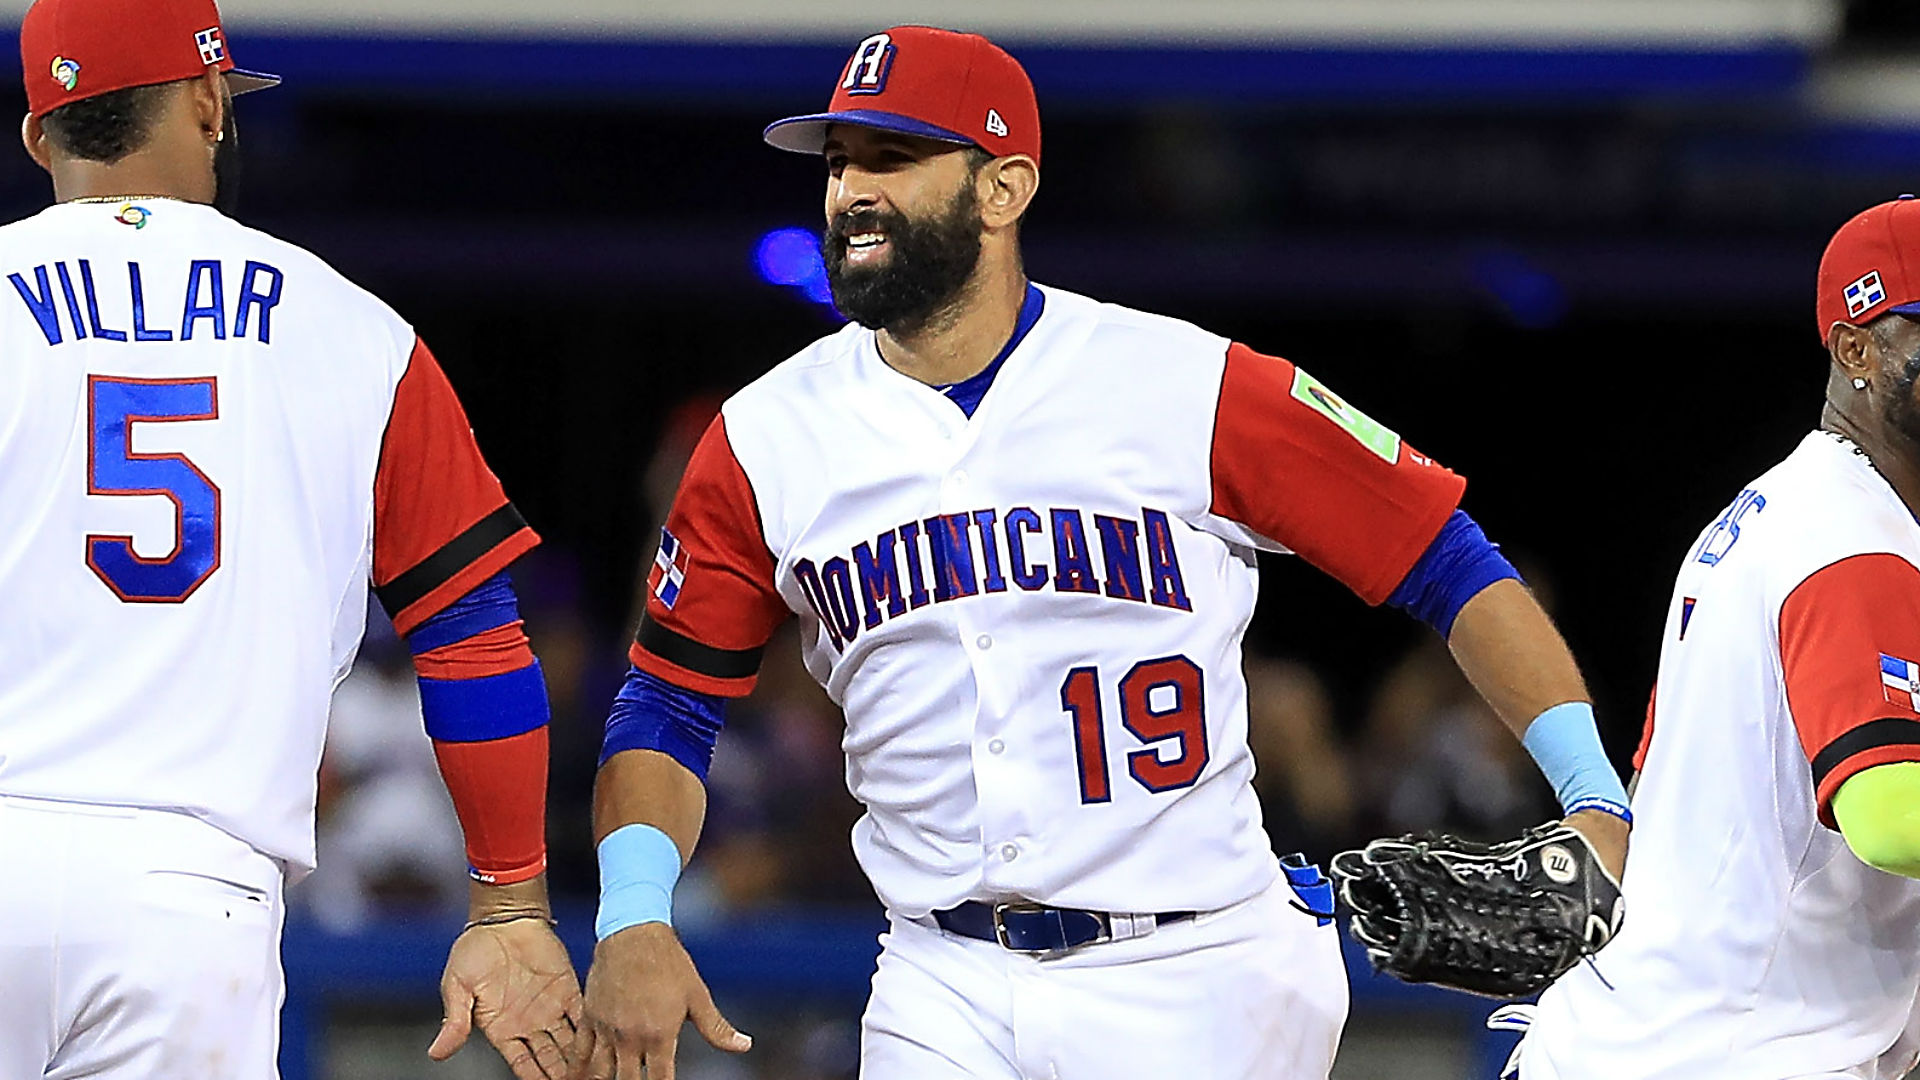 Dominicans rally for win over Team USA